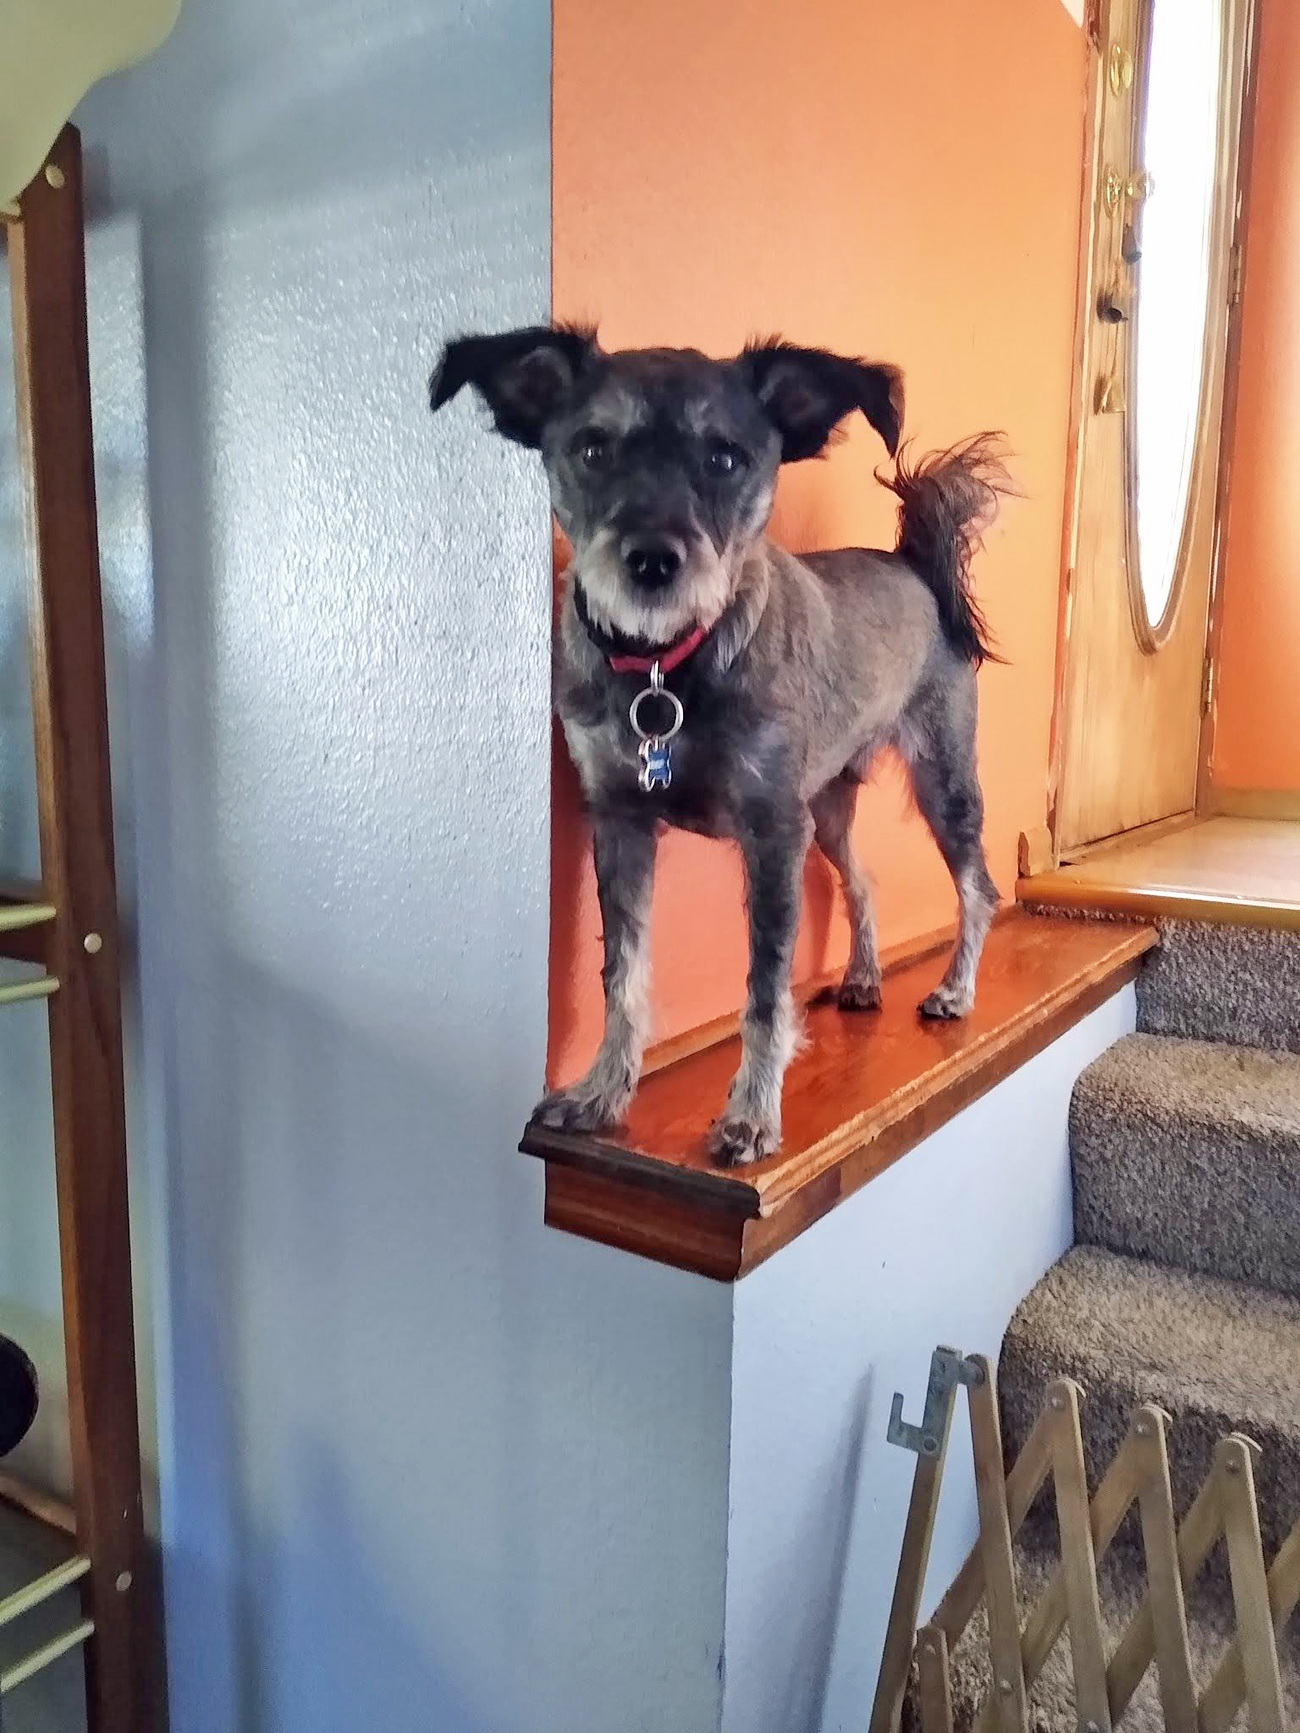 Terrier stands on stair ledge